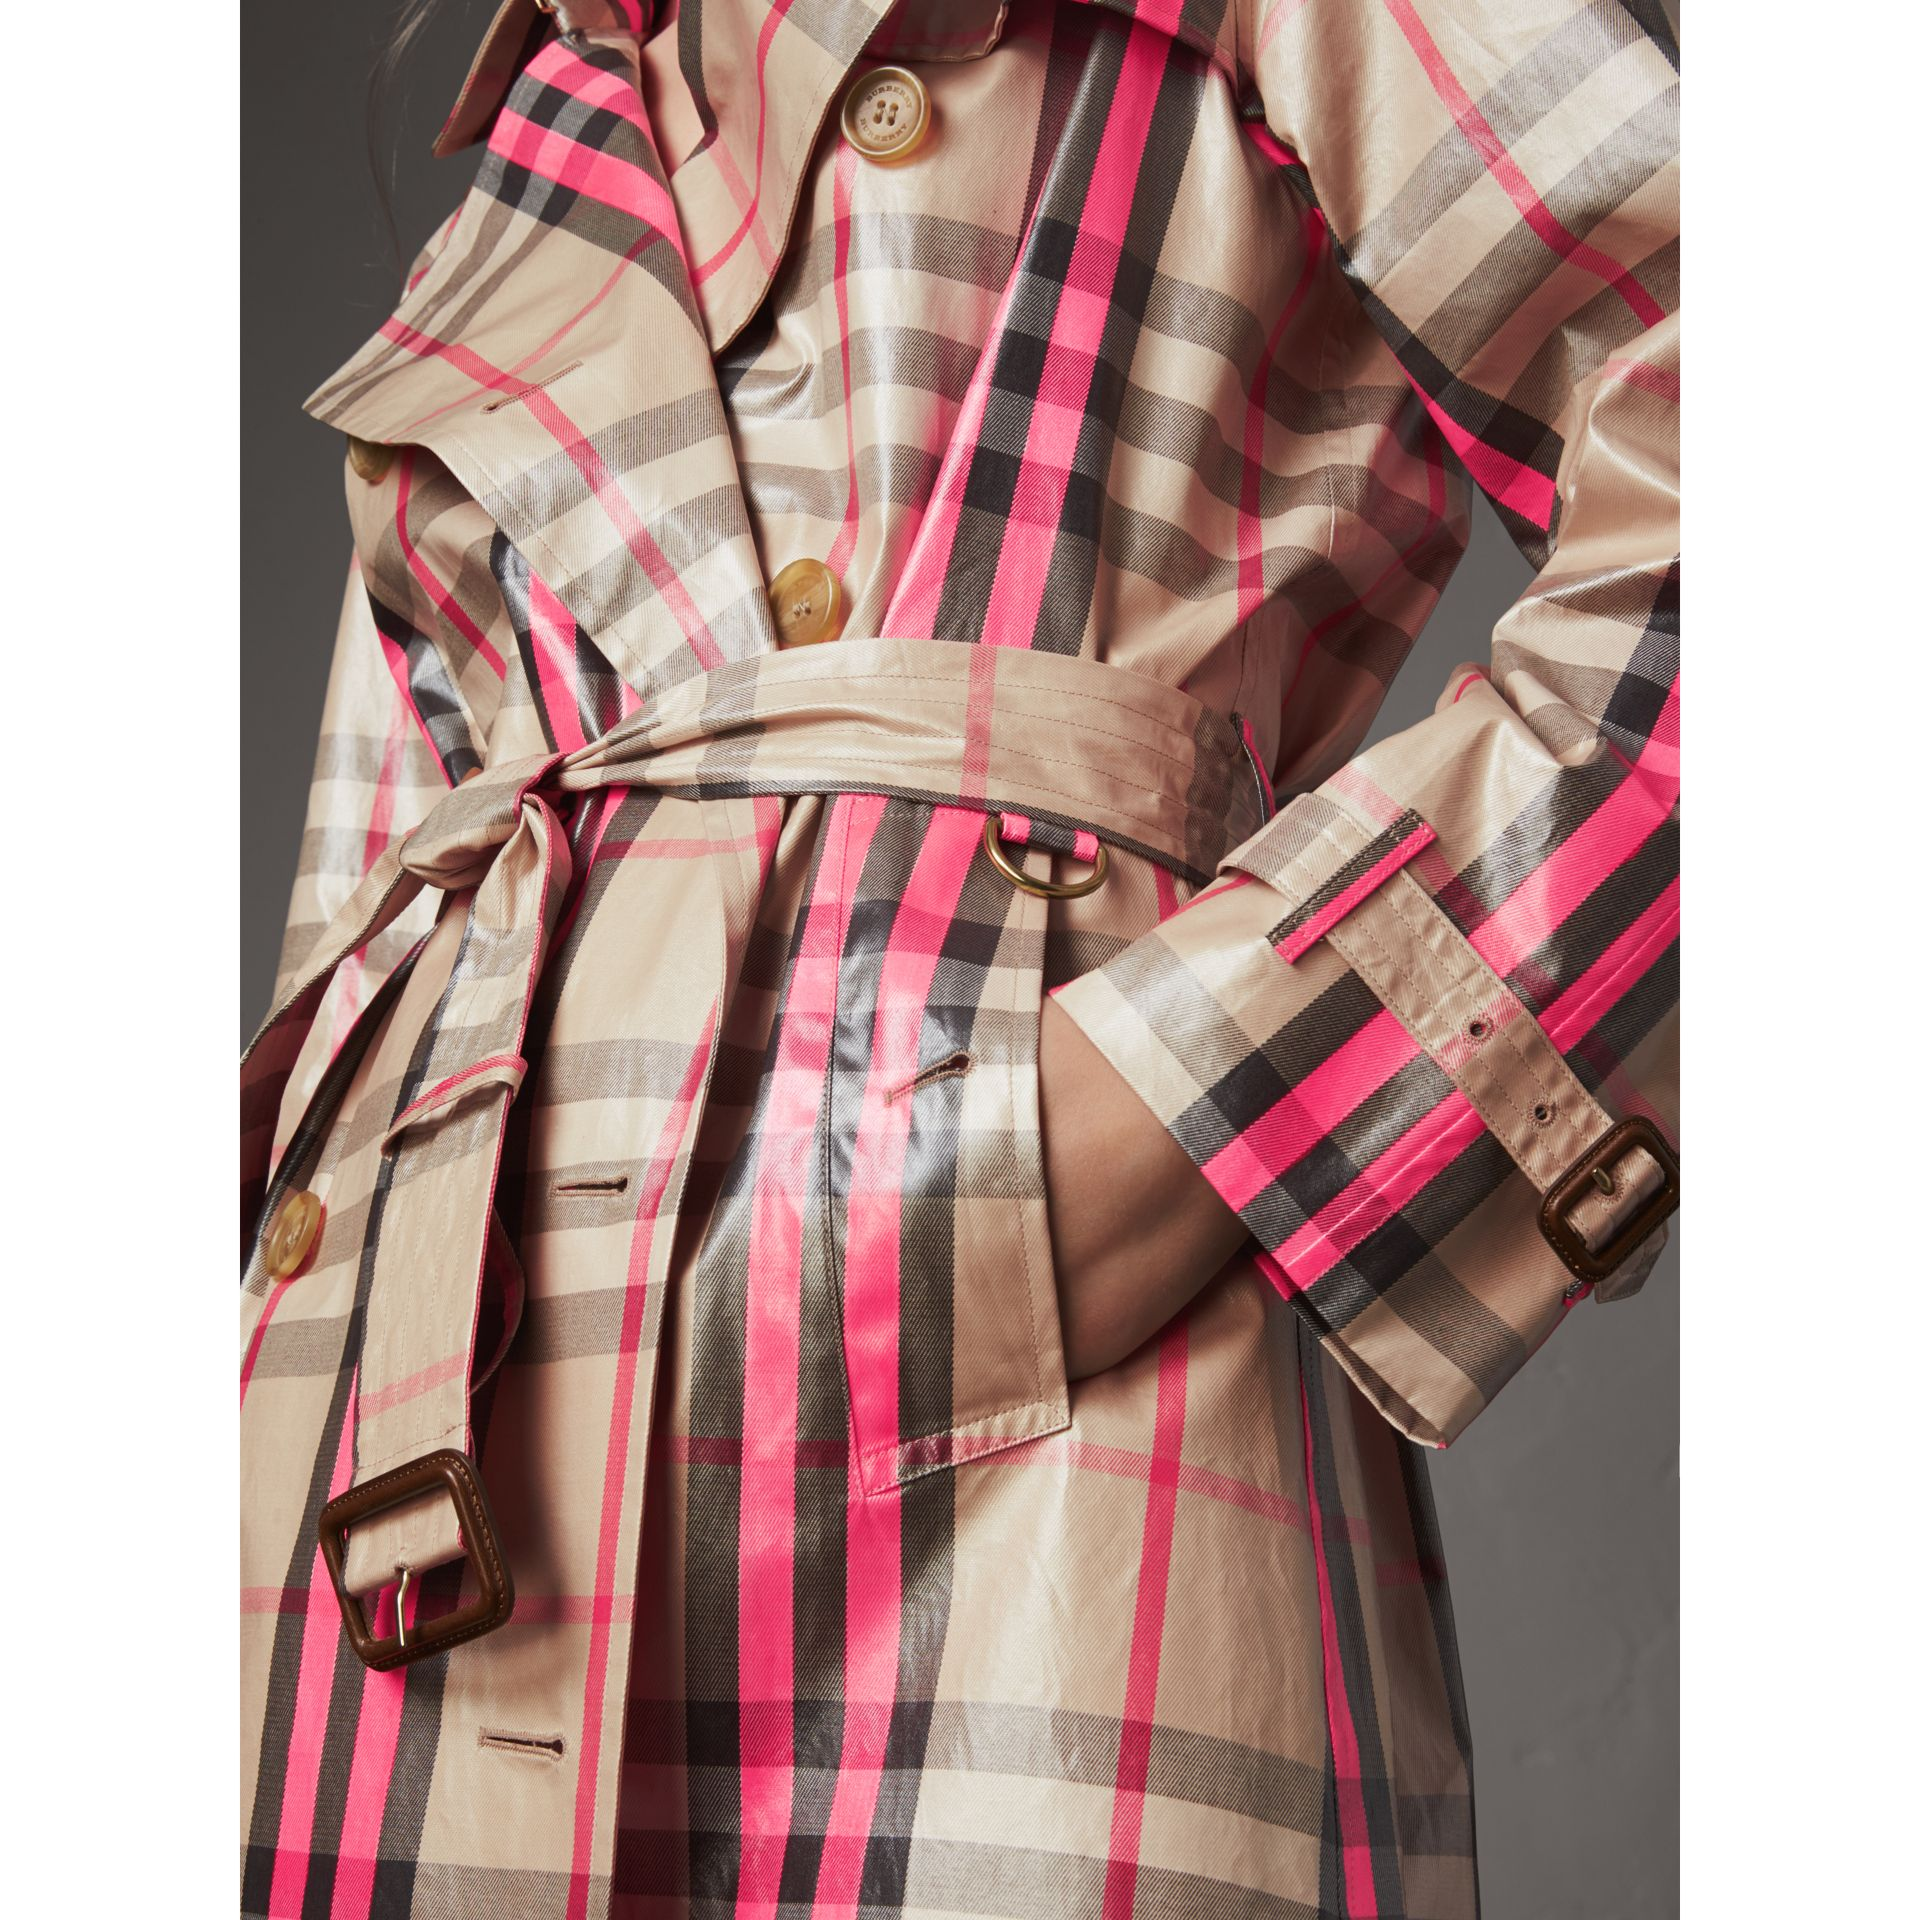 Trench à motif check effet vinyle (Rose Néon) - Femme | Burberry - photo de la galerie 1